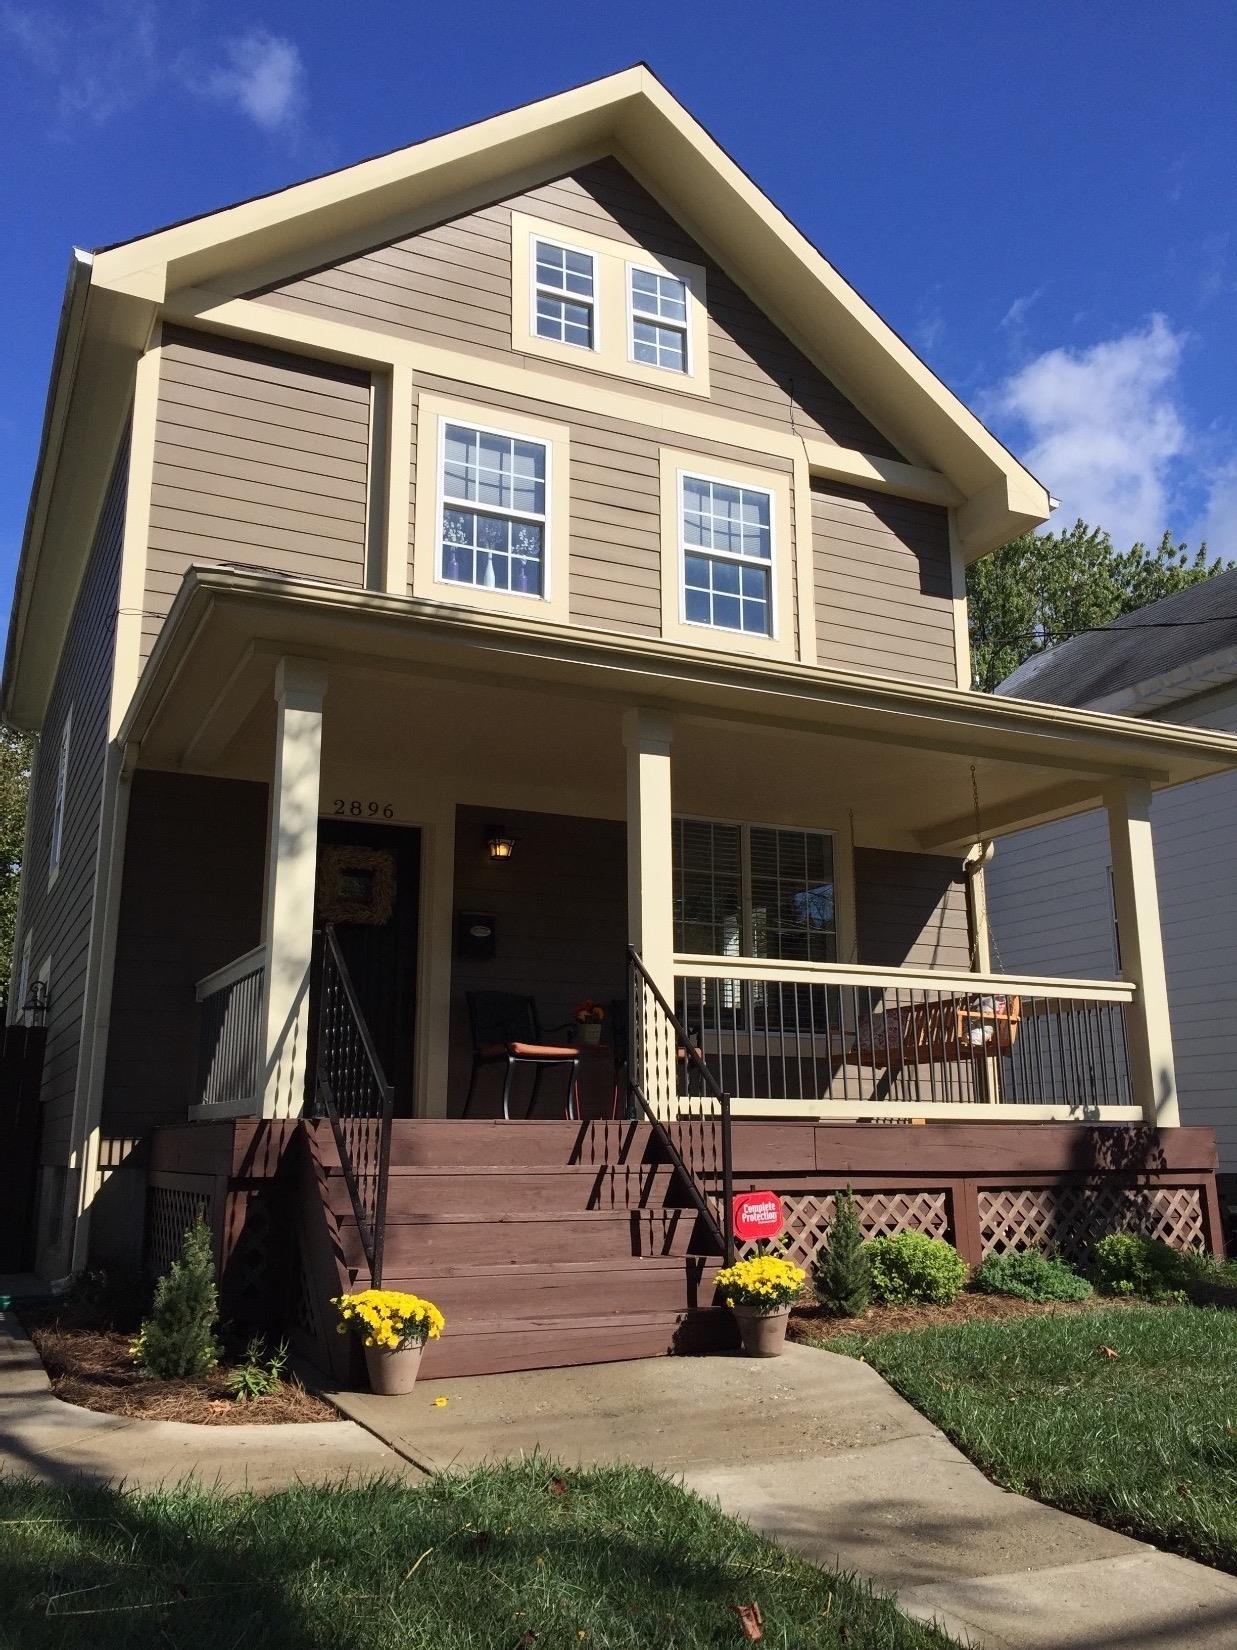 Homes for sale oakley oh southern wisconsin bluegrass for Home builders in southern ohio